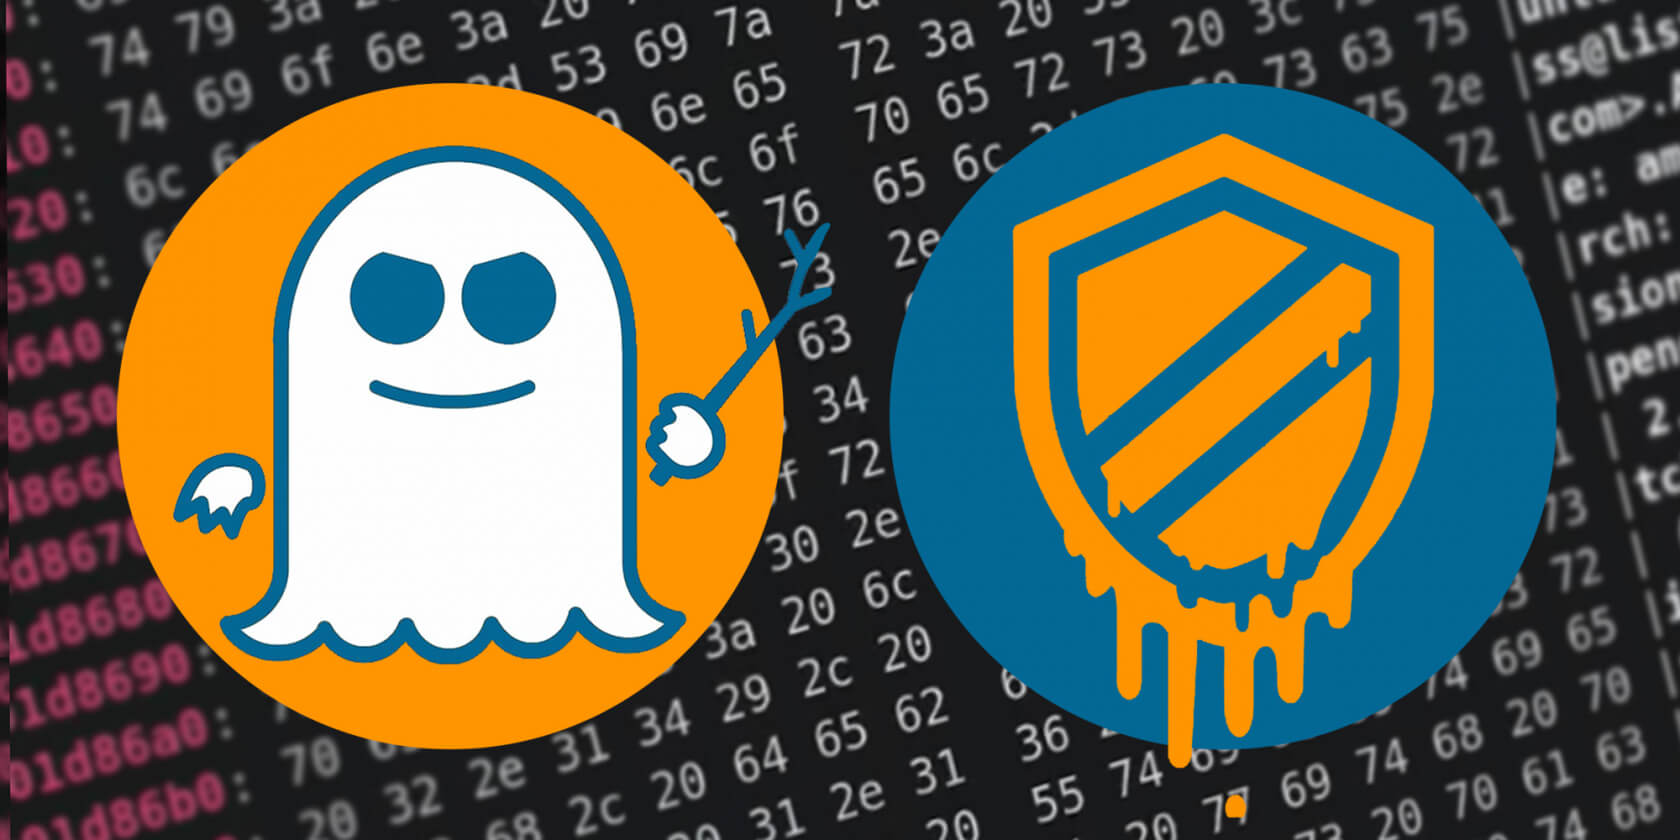 Researchers have discovered seven new Spectre and Meltdown vulnerabilities